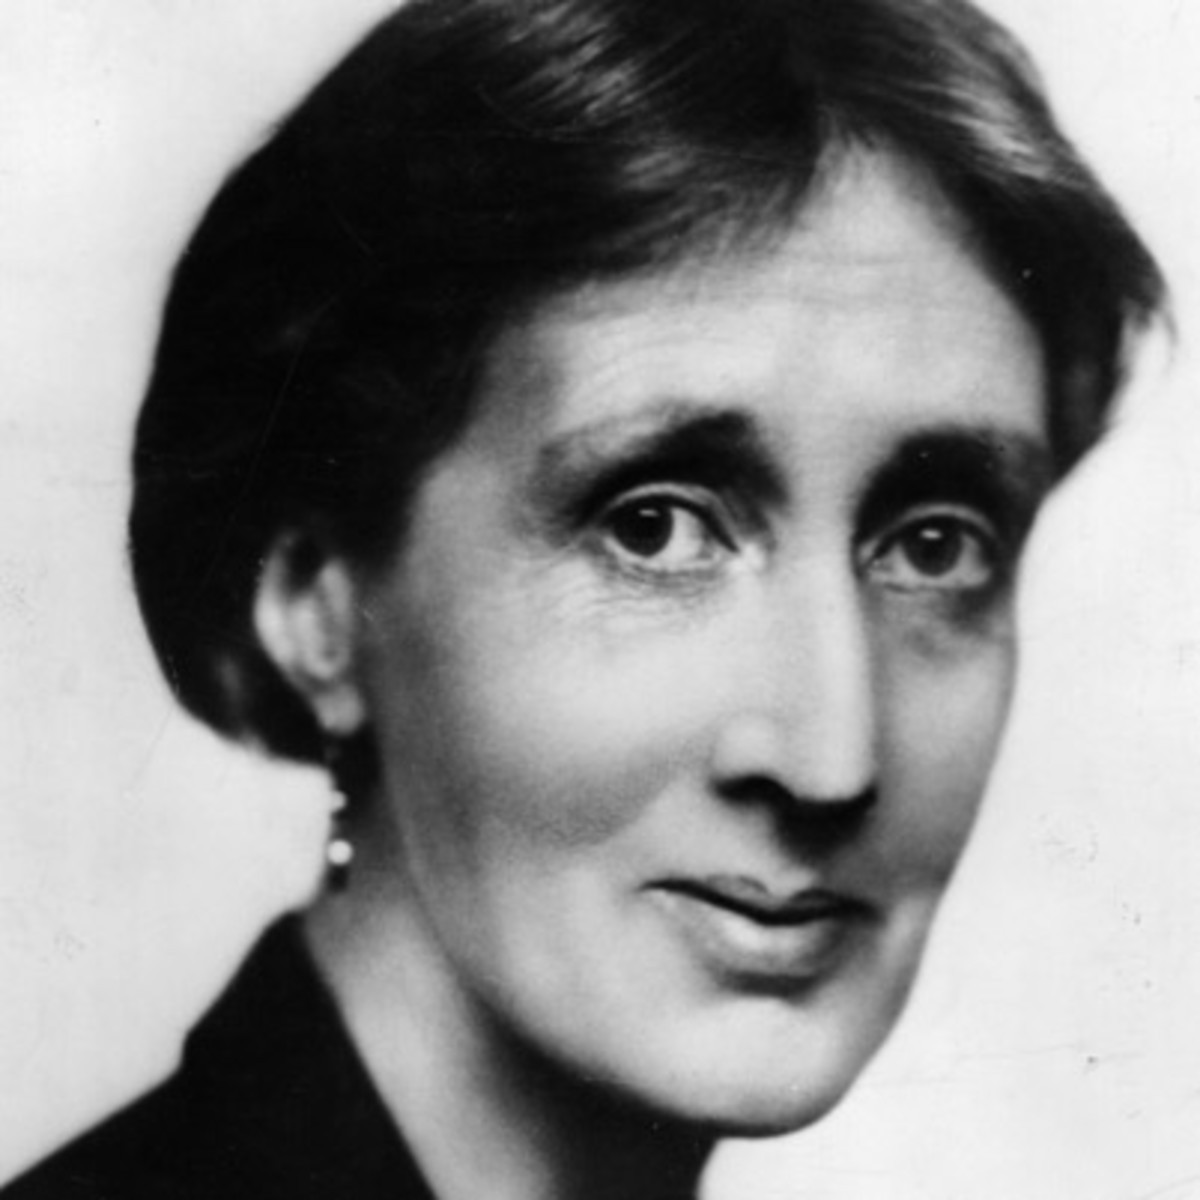 virginia-woolf-9536773-1-402.jpg